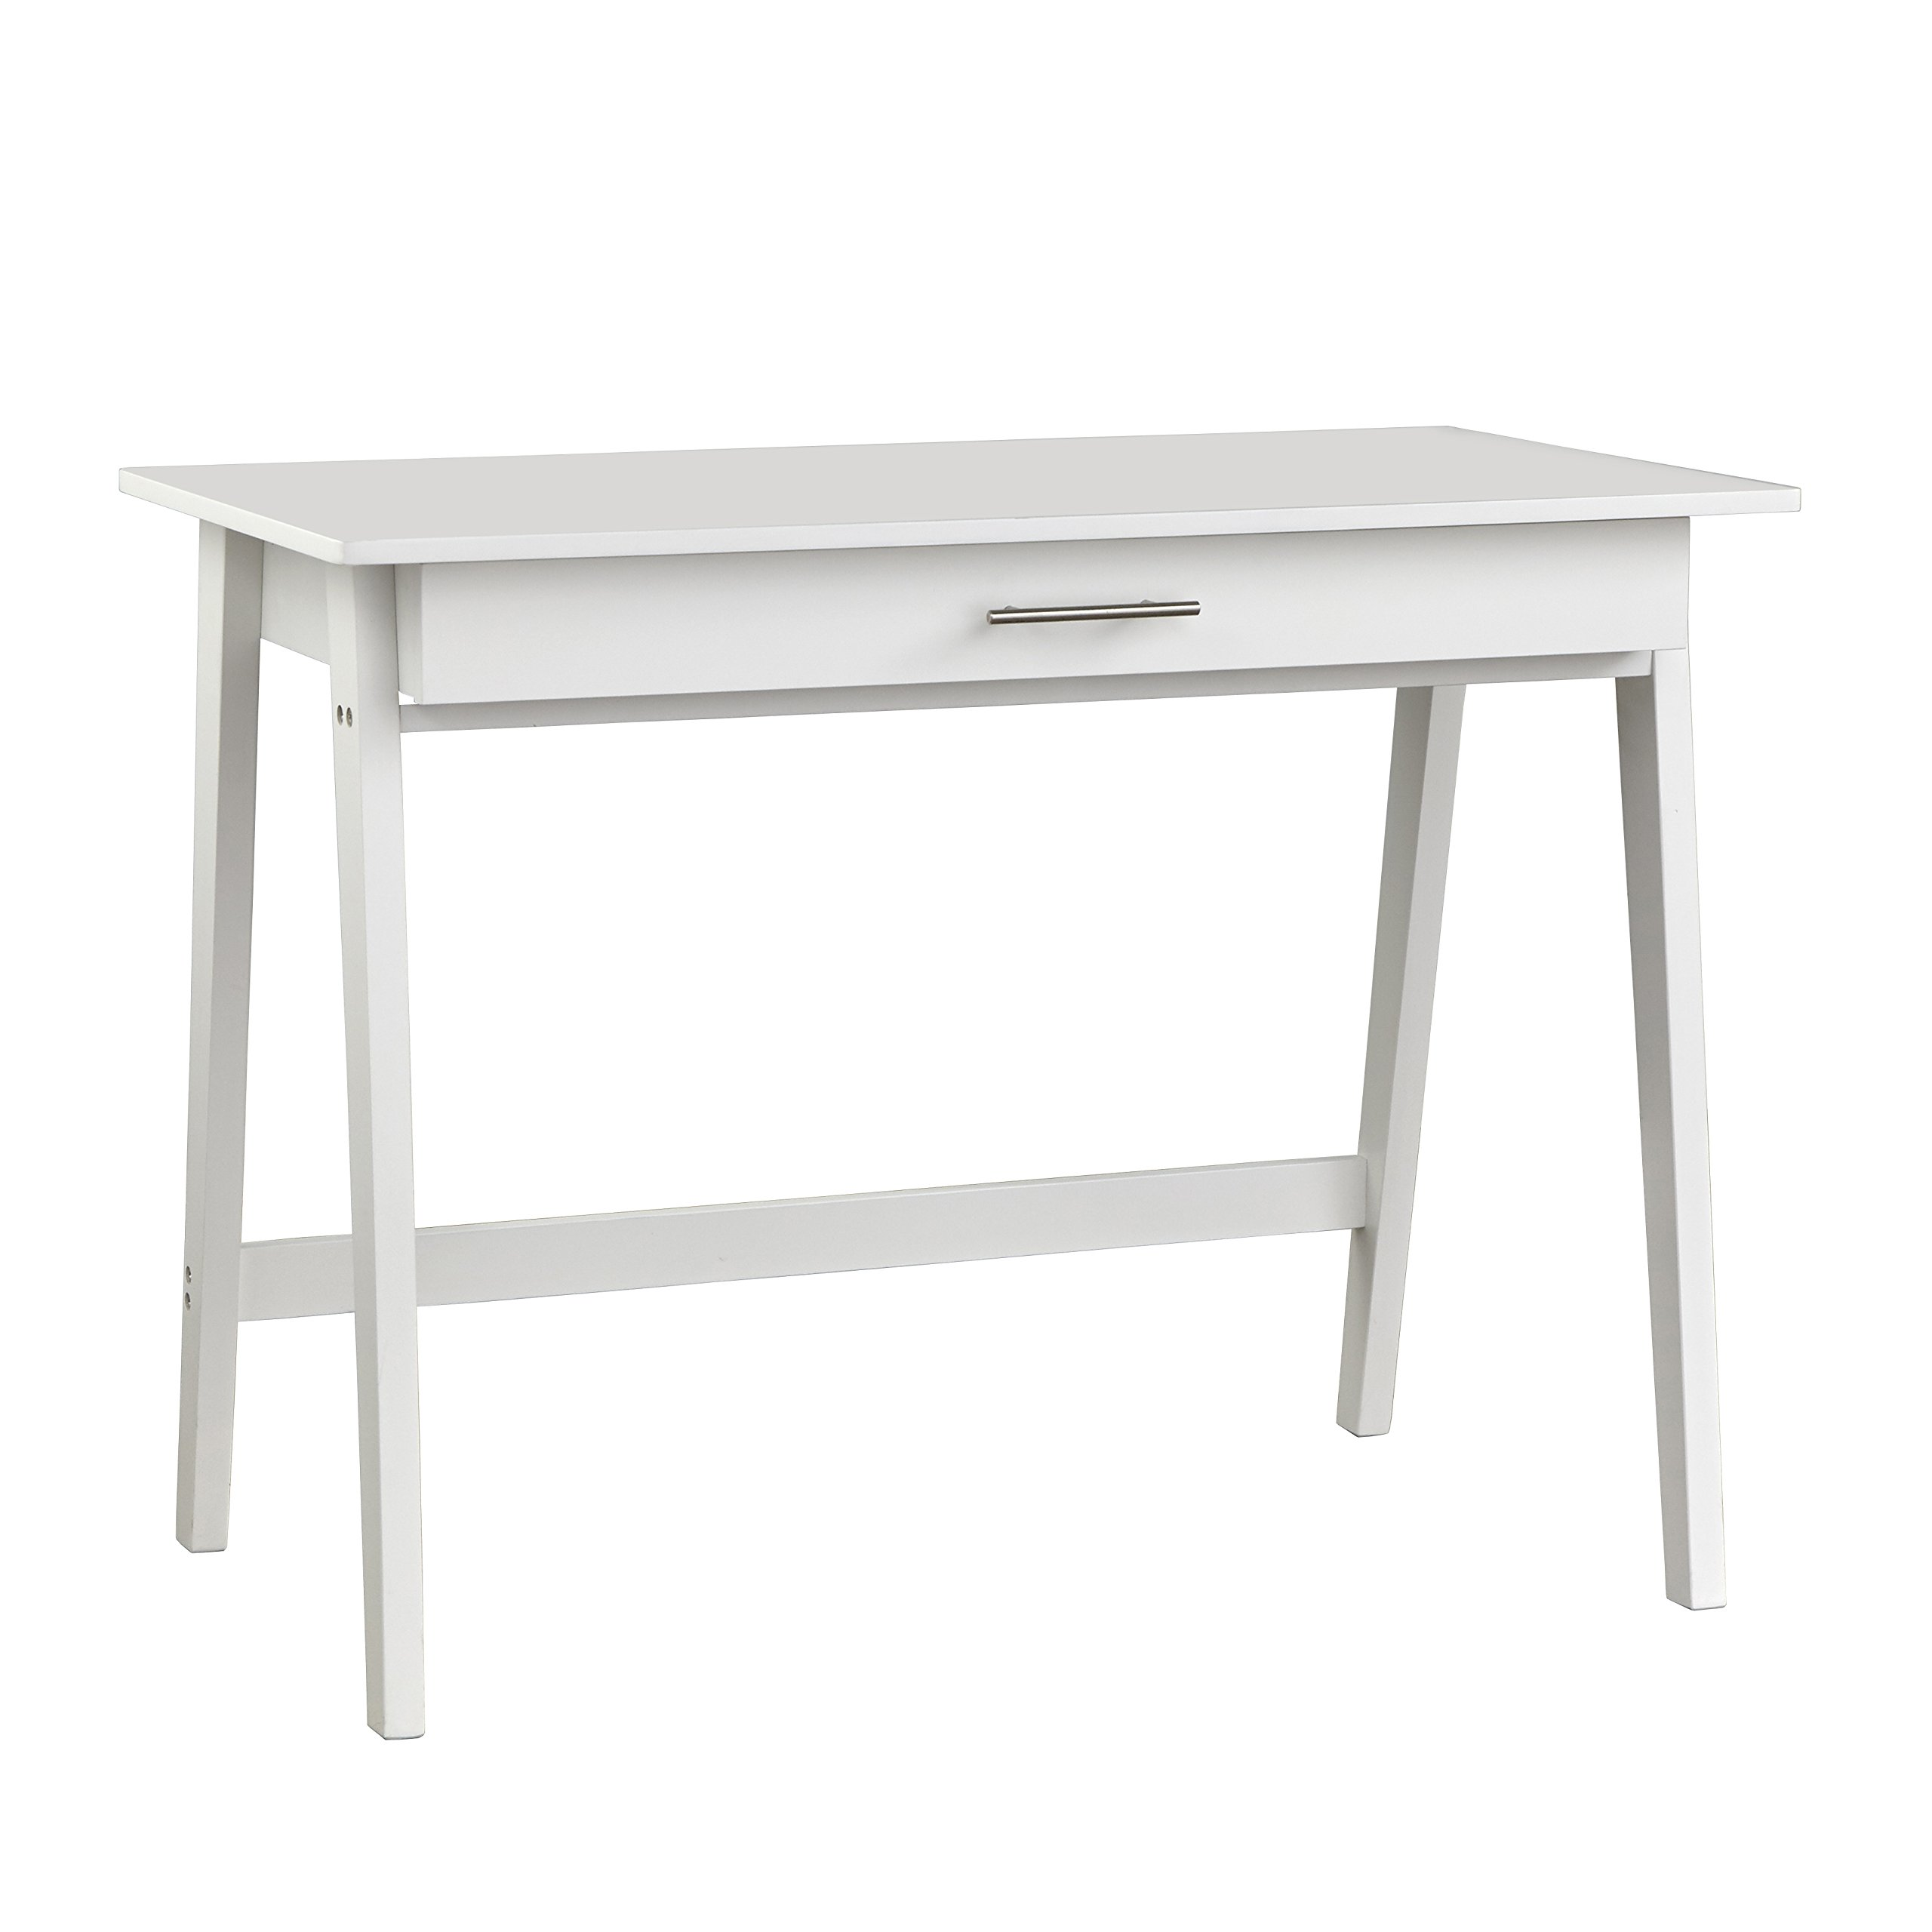 Target Marketing Systems 60707WHT Renata Wooden Home Office Desk, White by Target Marketing Systems